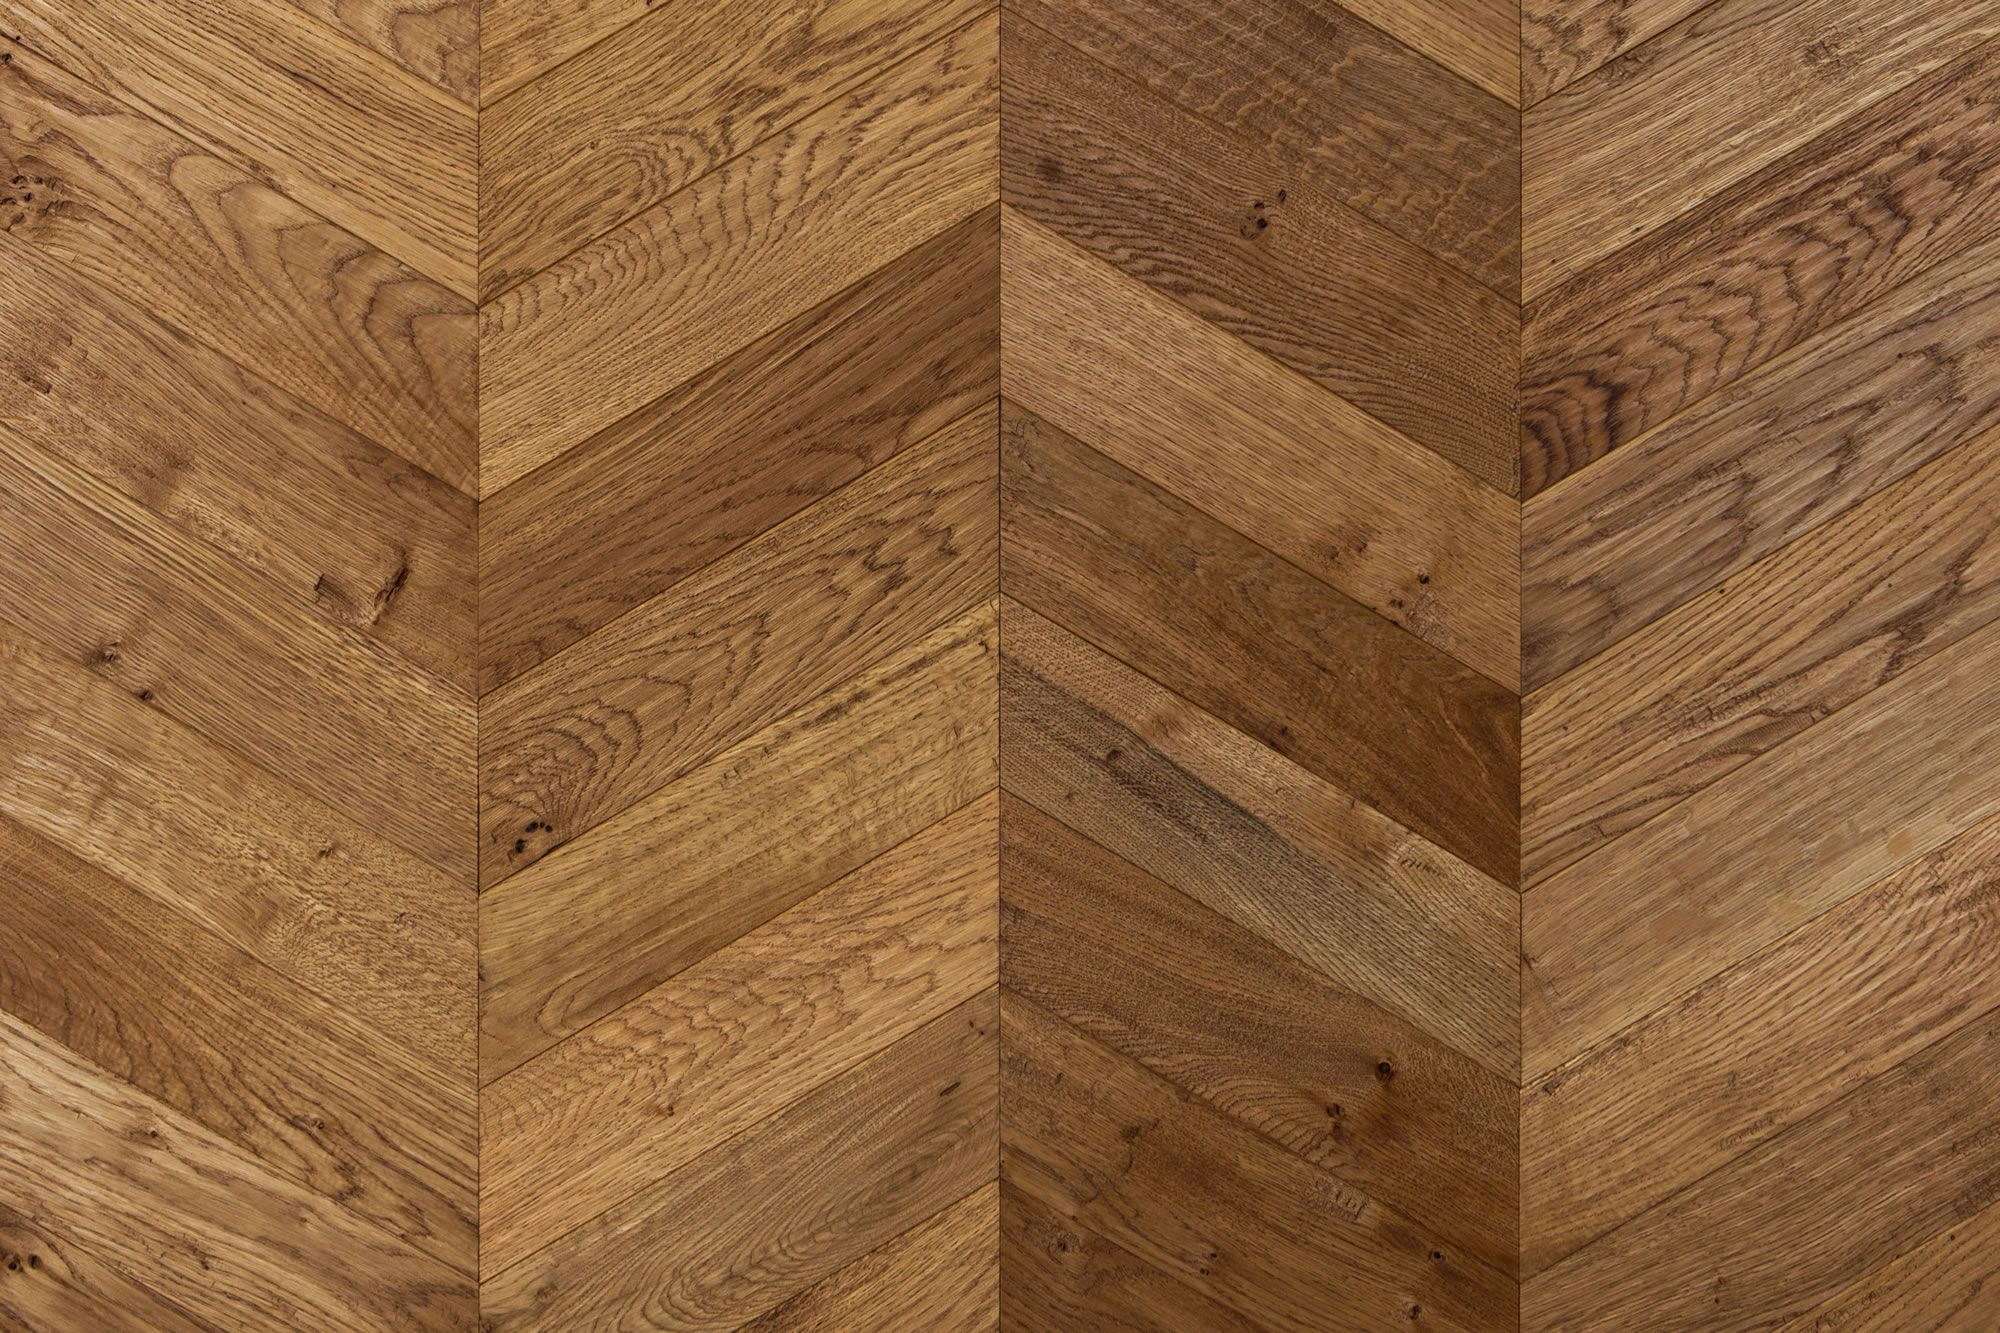 textured old oak chevron element7 chevron pattern floors pinterest chevron floor. Black Bedroom Furniture Sets. Home Design Ideas